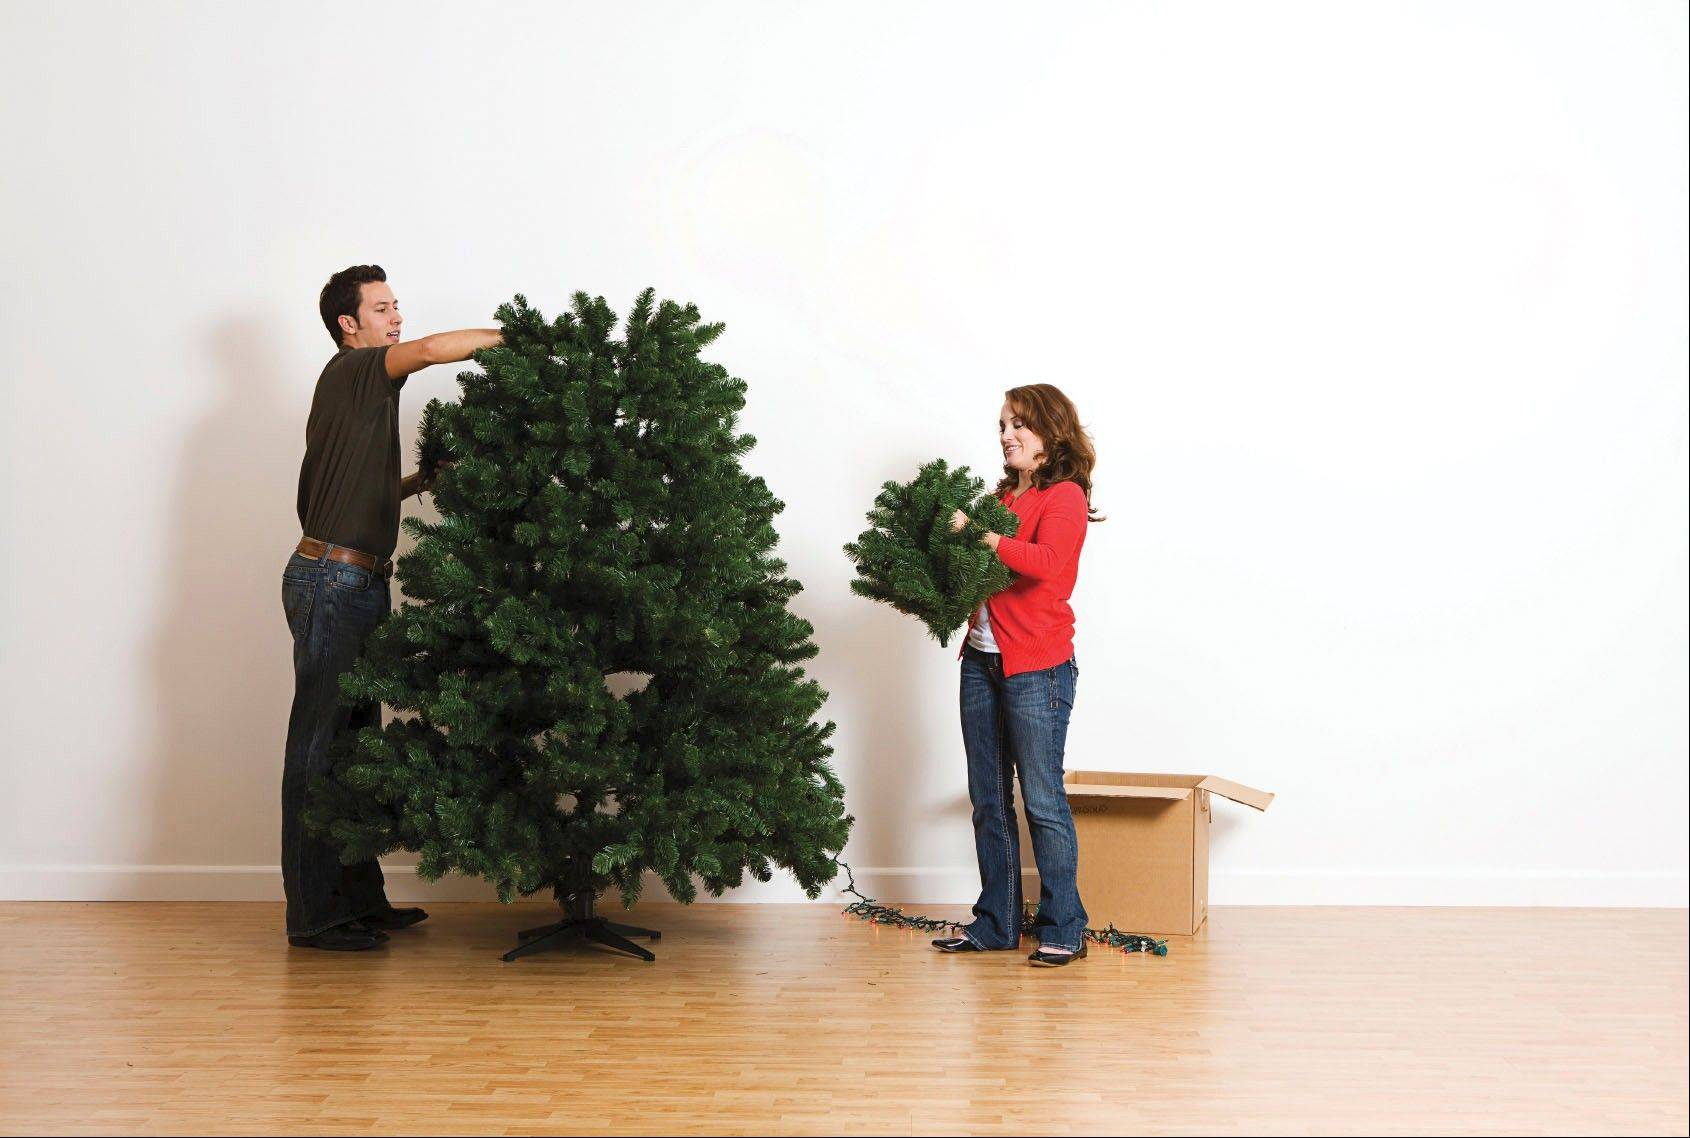 Holiday help: Wrap strands of lights around cardboard to keep them untangled, and look for specially designed containers for oddly-shaped decorations like artificial trees.